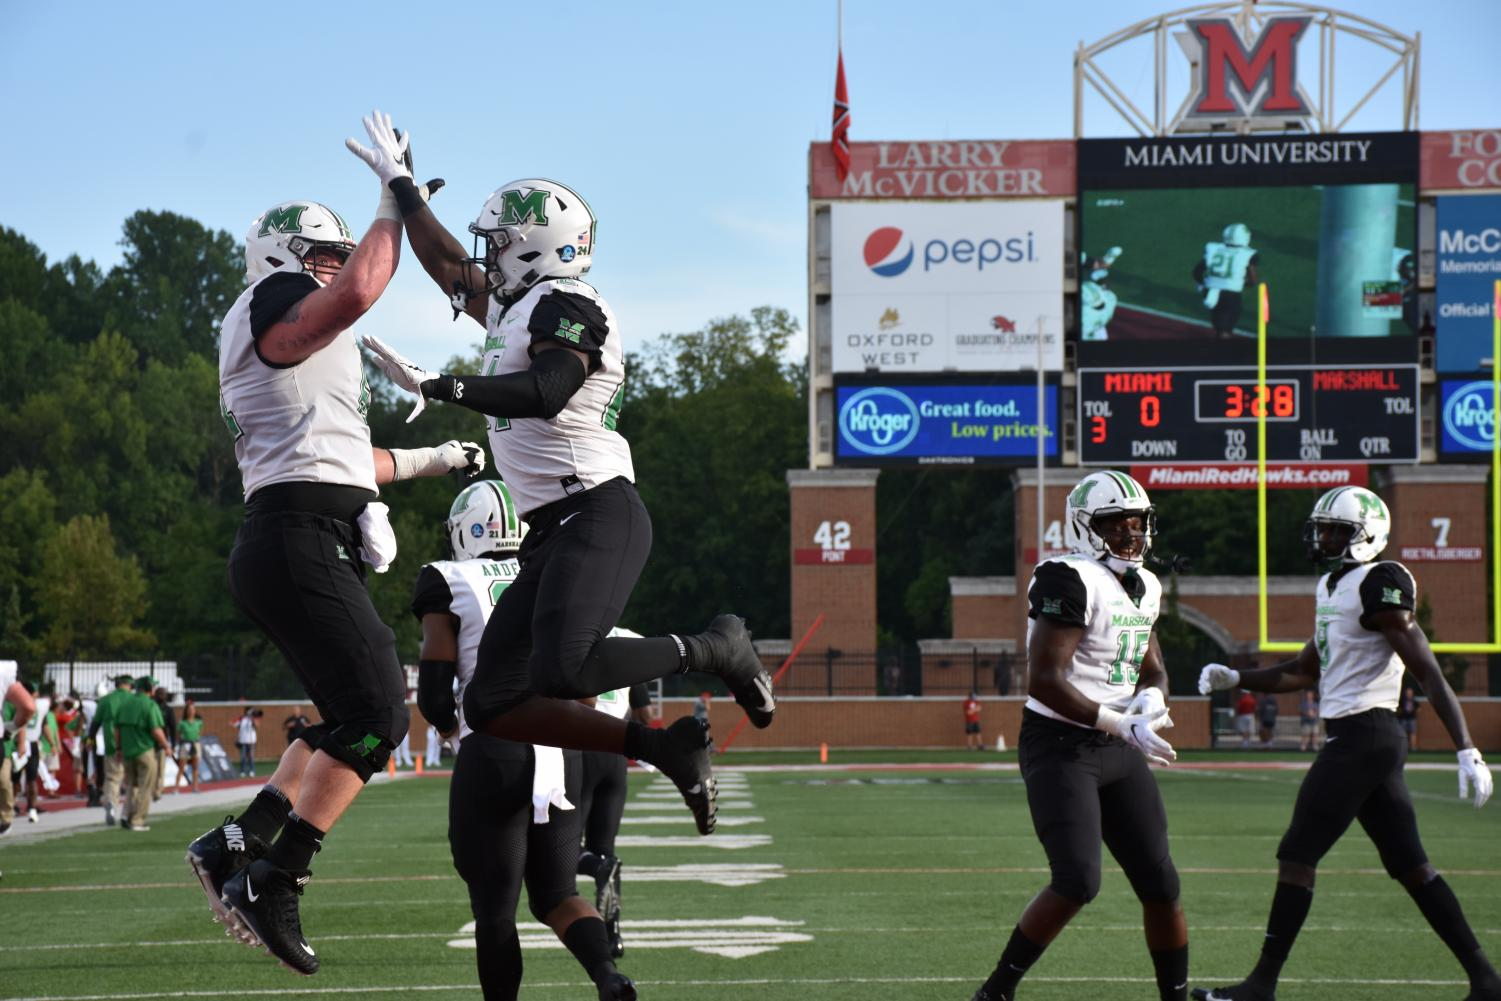 Redshirt junior offensive lineman Levi Brown and redshirt senior running back Keion Davis celebrate with high fives after the Herd takes a 14-0 lead over Miami in the first quarter. Davis and redshirt senior Anthony Anderson, combined to score three of Marshall's five total touchdowns against the RedHawks.